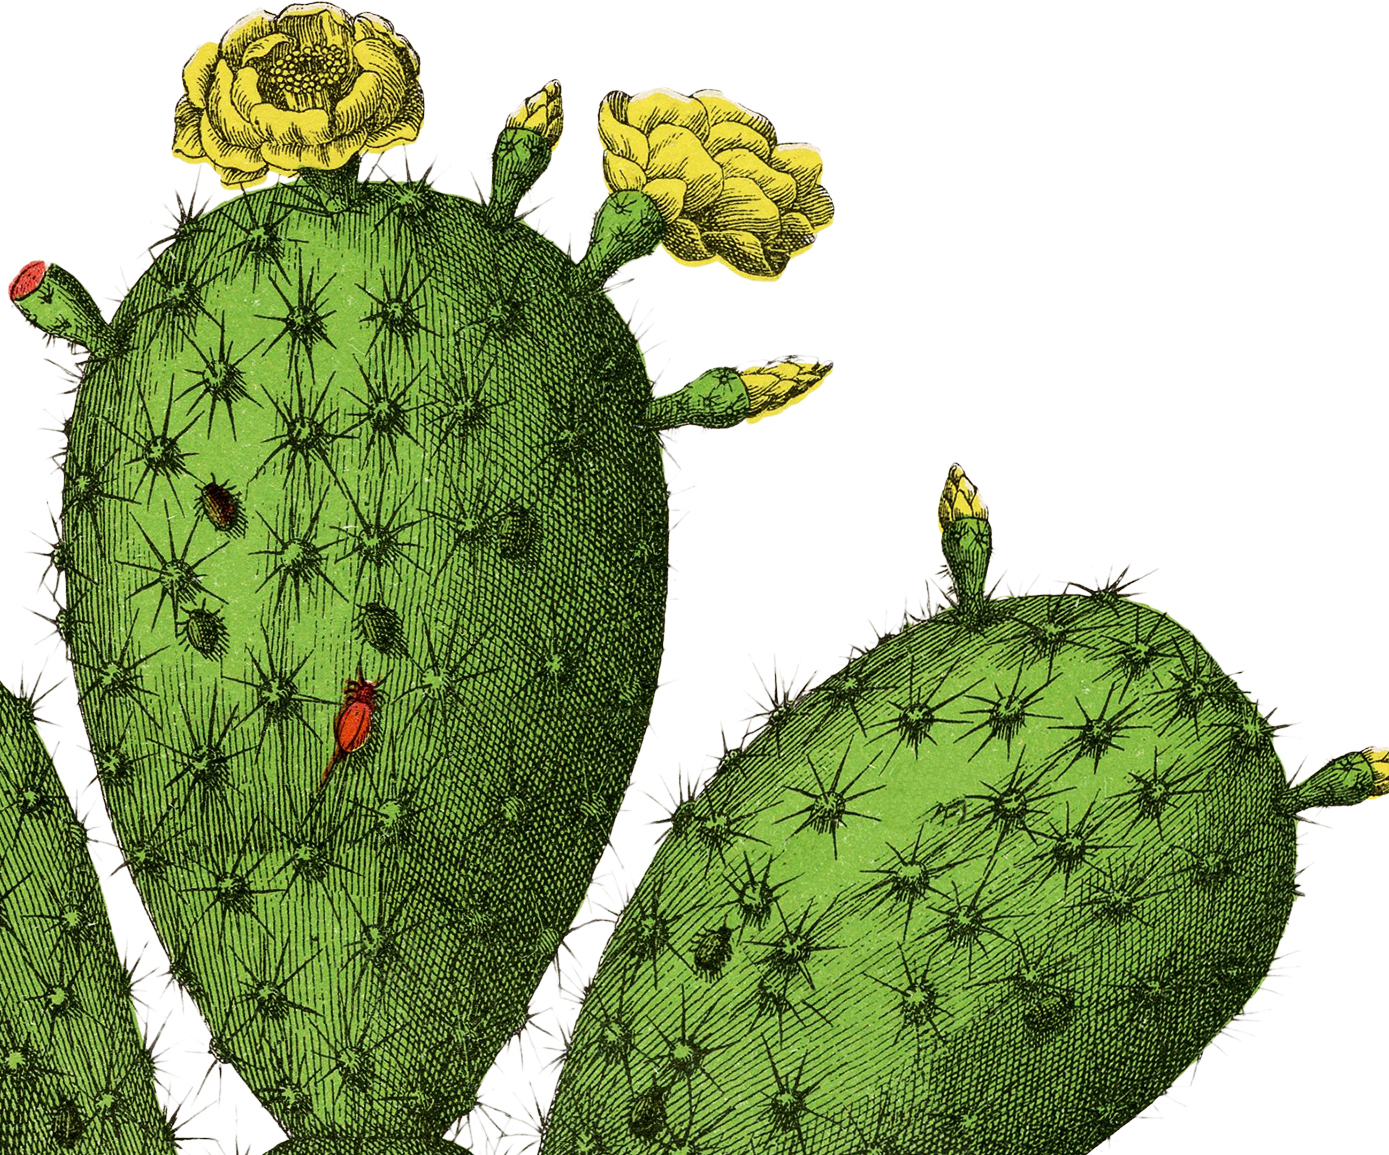 Vintage Cactus Botanical Image The Graphics Fairy